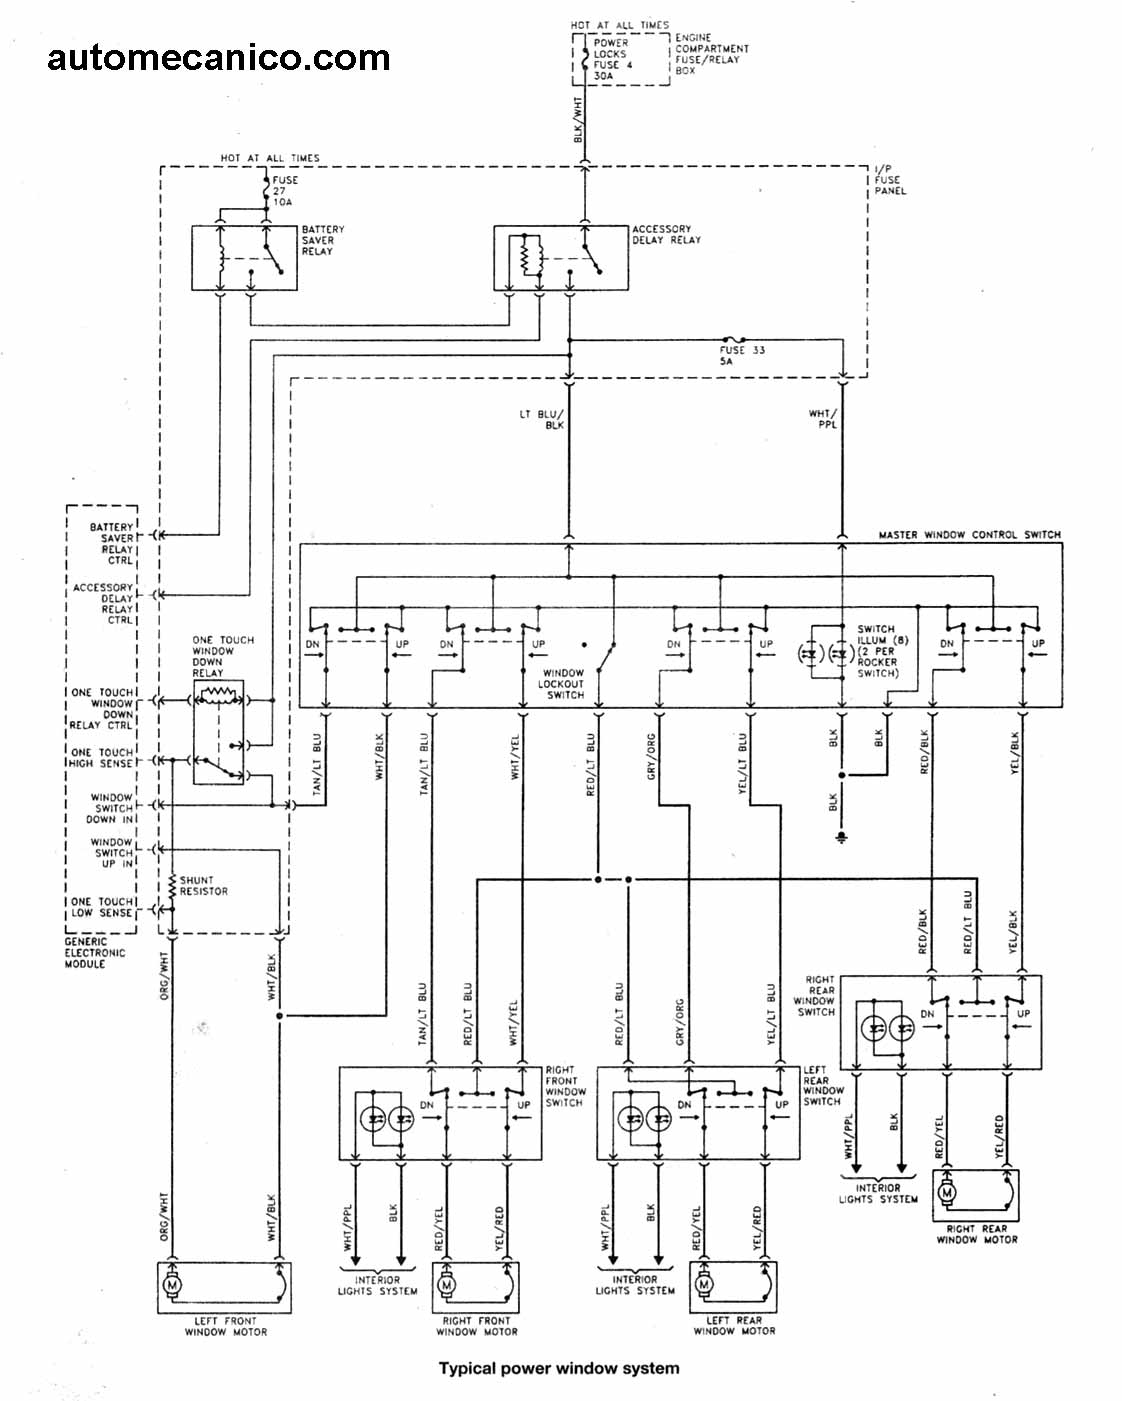 Diagrama Electrico De Ford Explorer 96